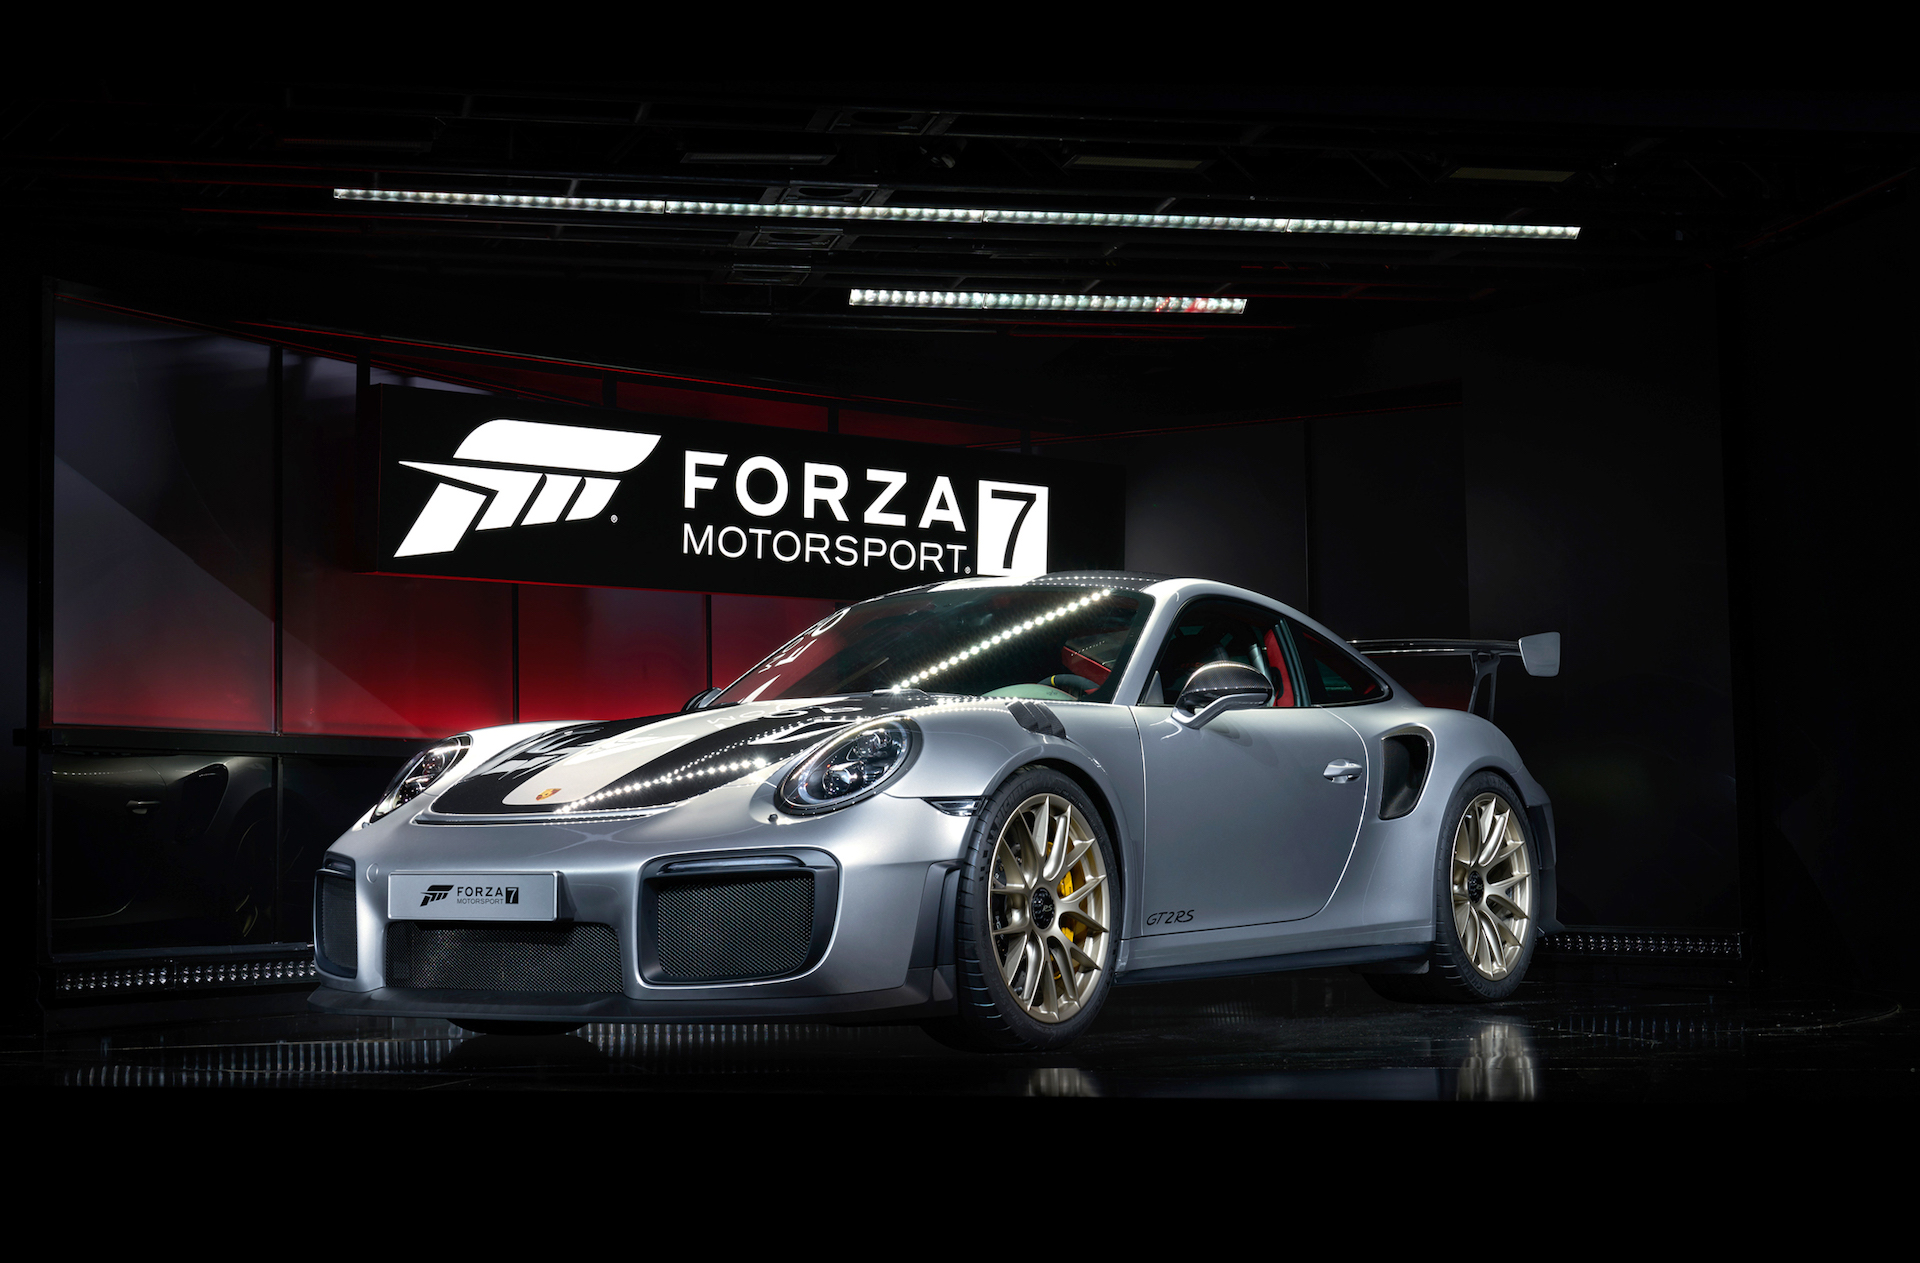 forza motorsport 7 debutta con la nuova porsche 911 gt2 rs red live. Black Bedroom Furniture Sets. Home Design Ideas